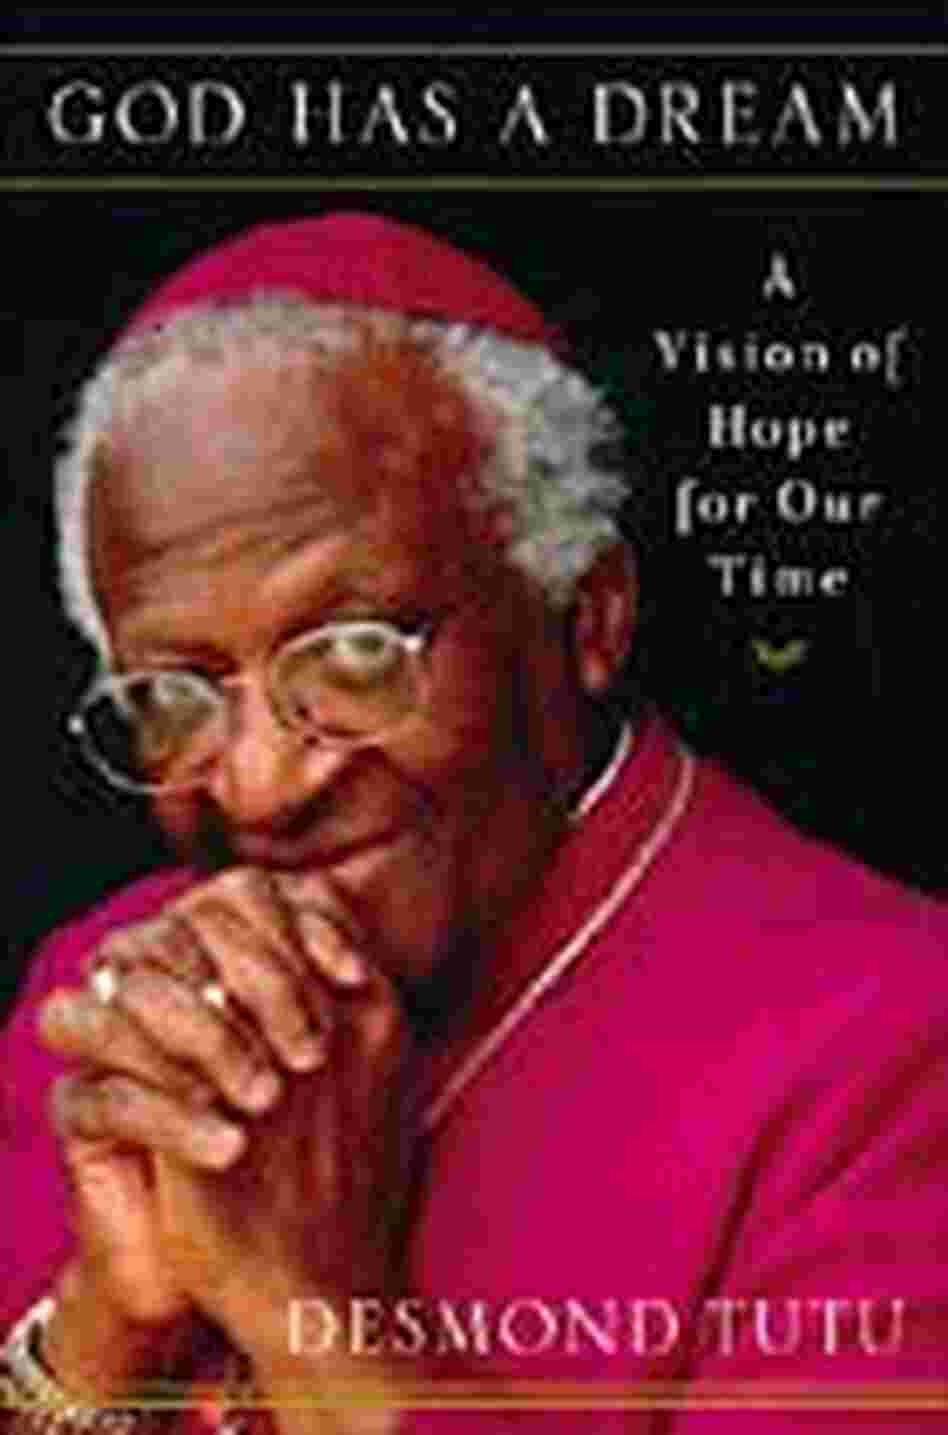 Cover of Desmond Tutu's latest book 'God Has a Dream'